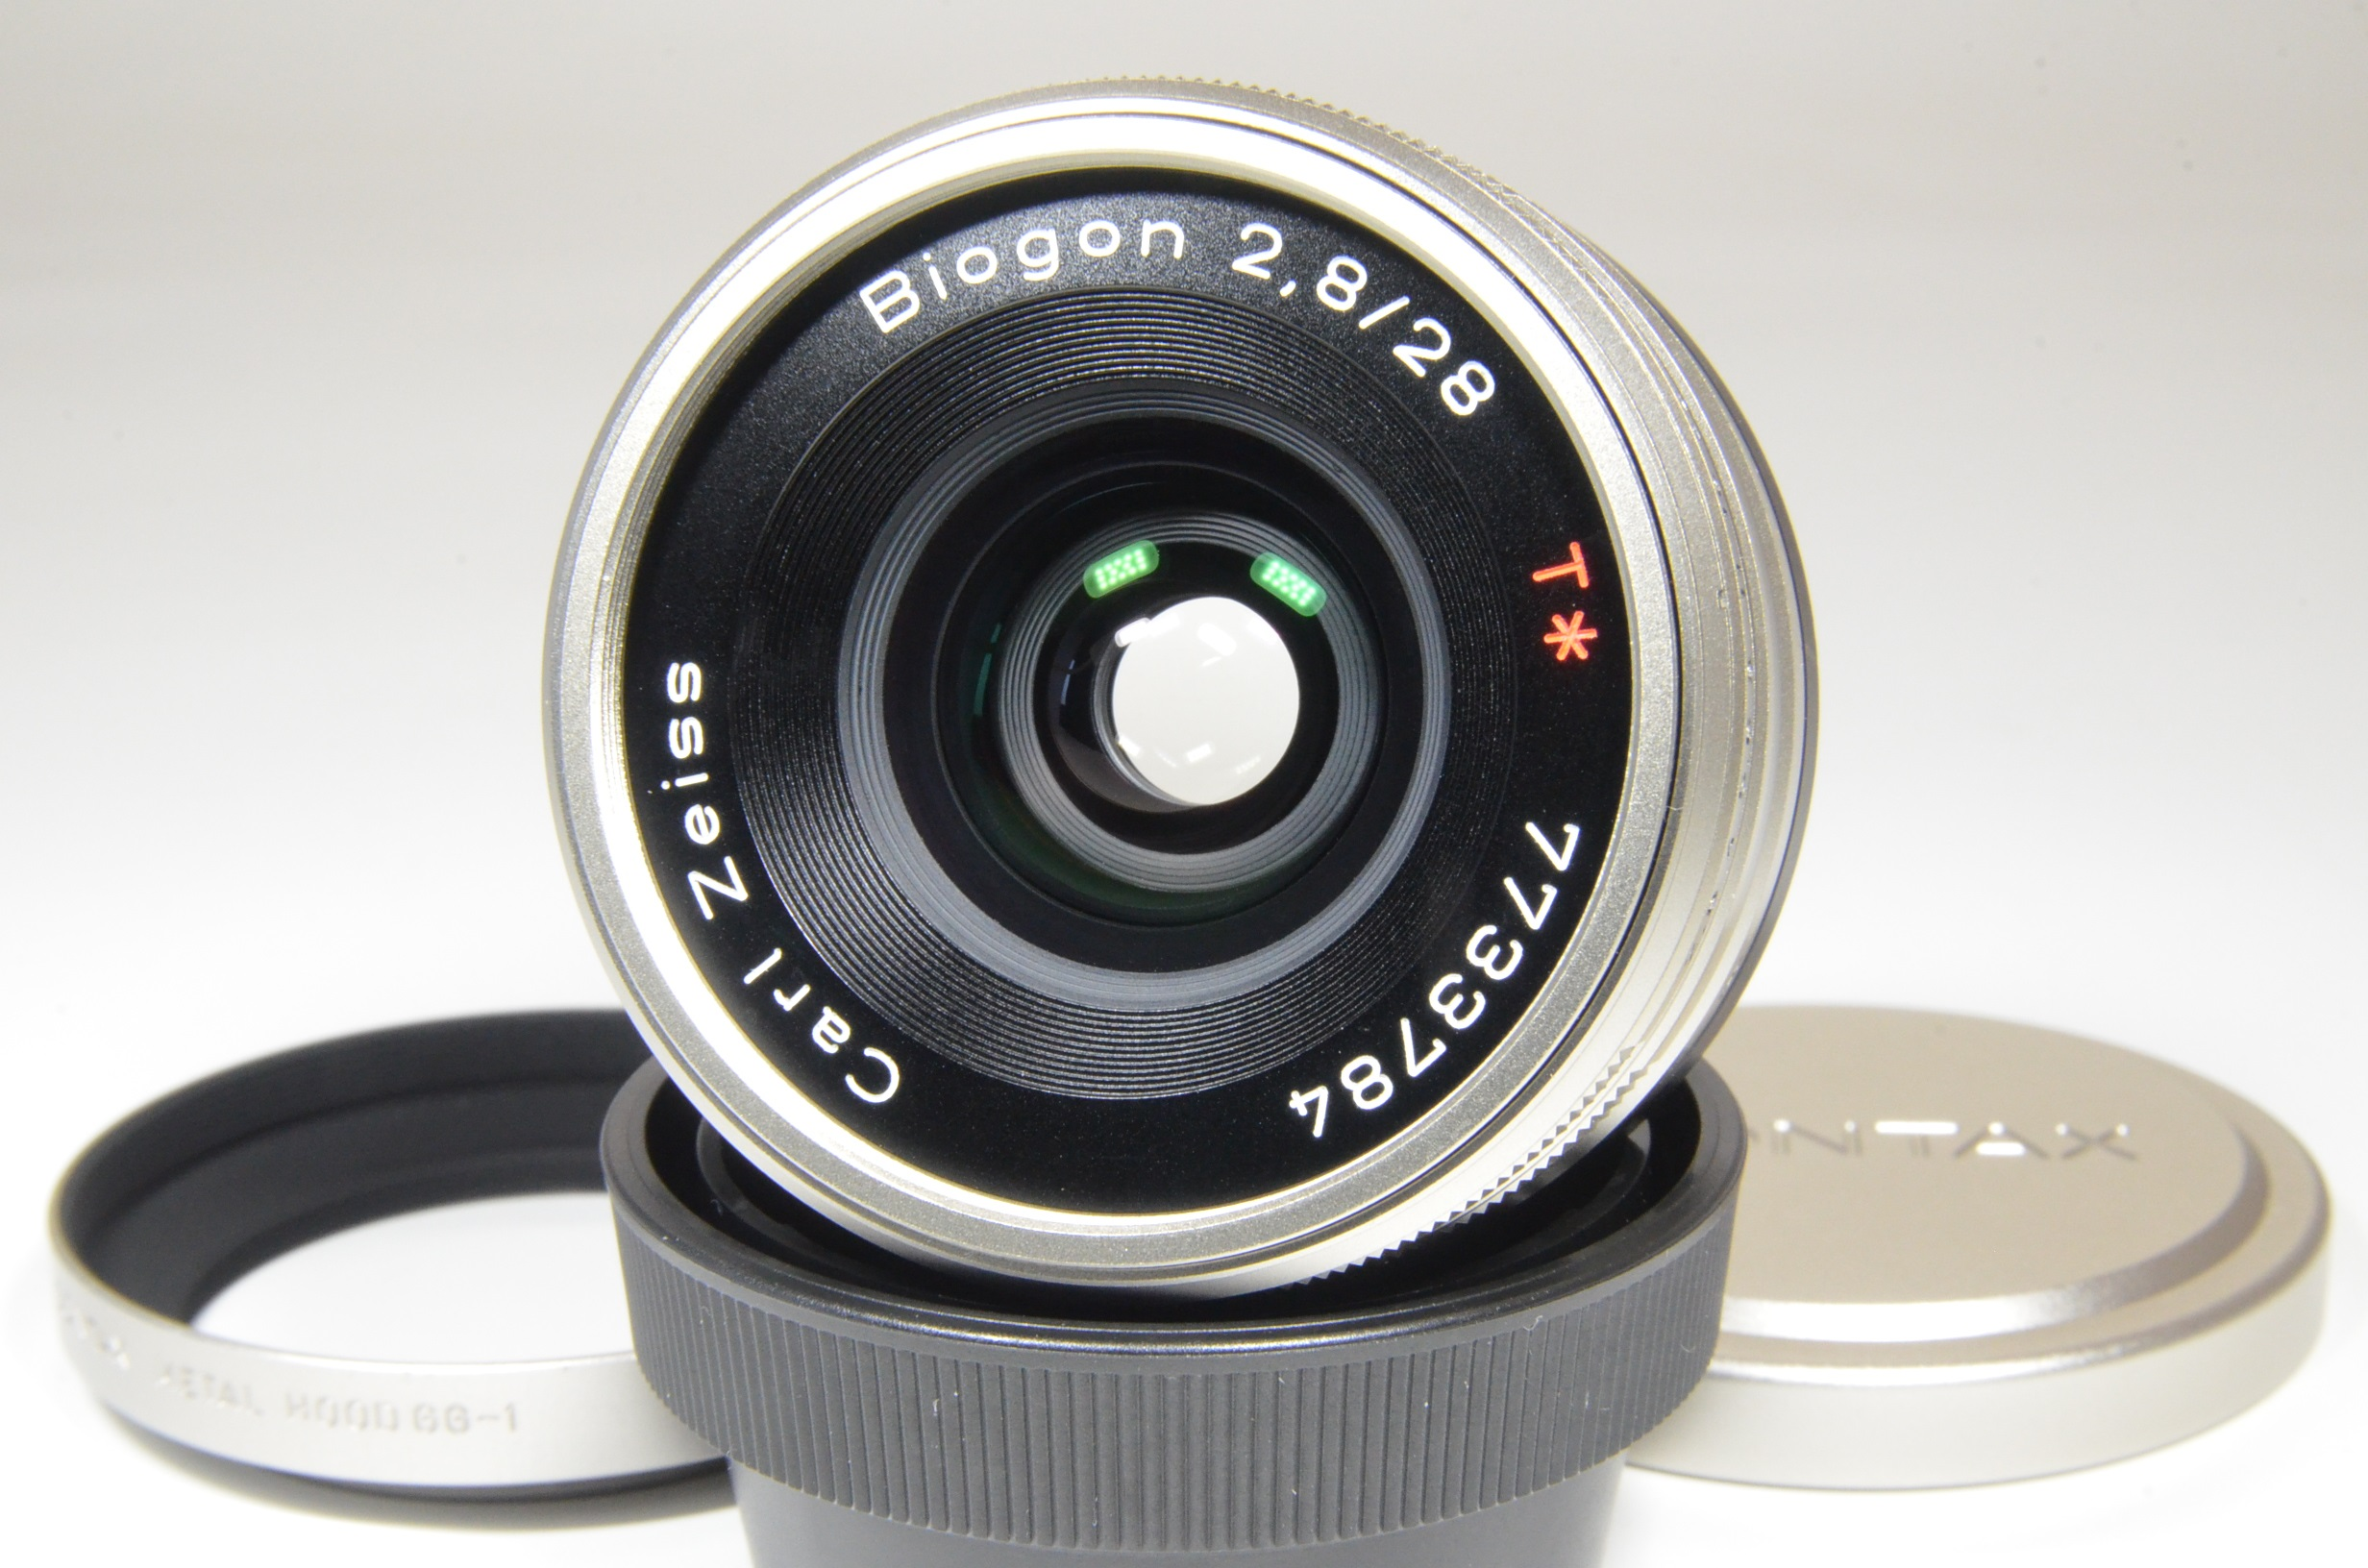 contax carl zeiss t* biogon 28mm f2.8 with lens hood